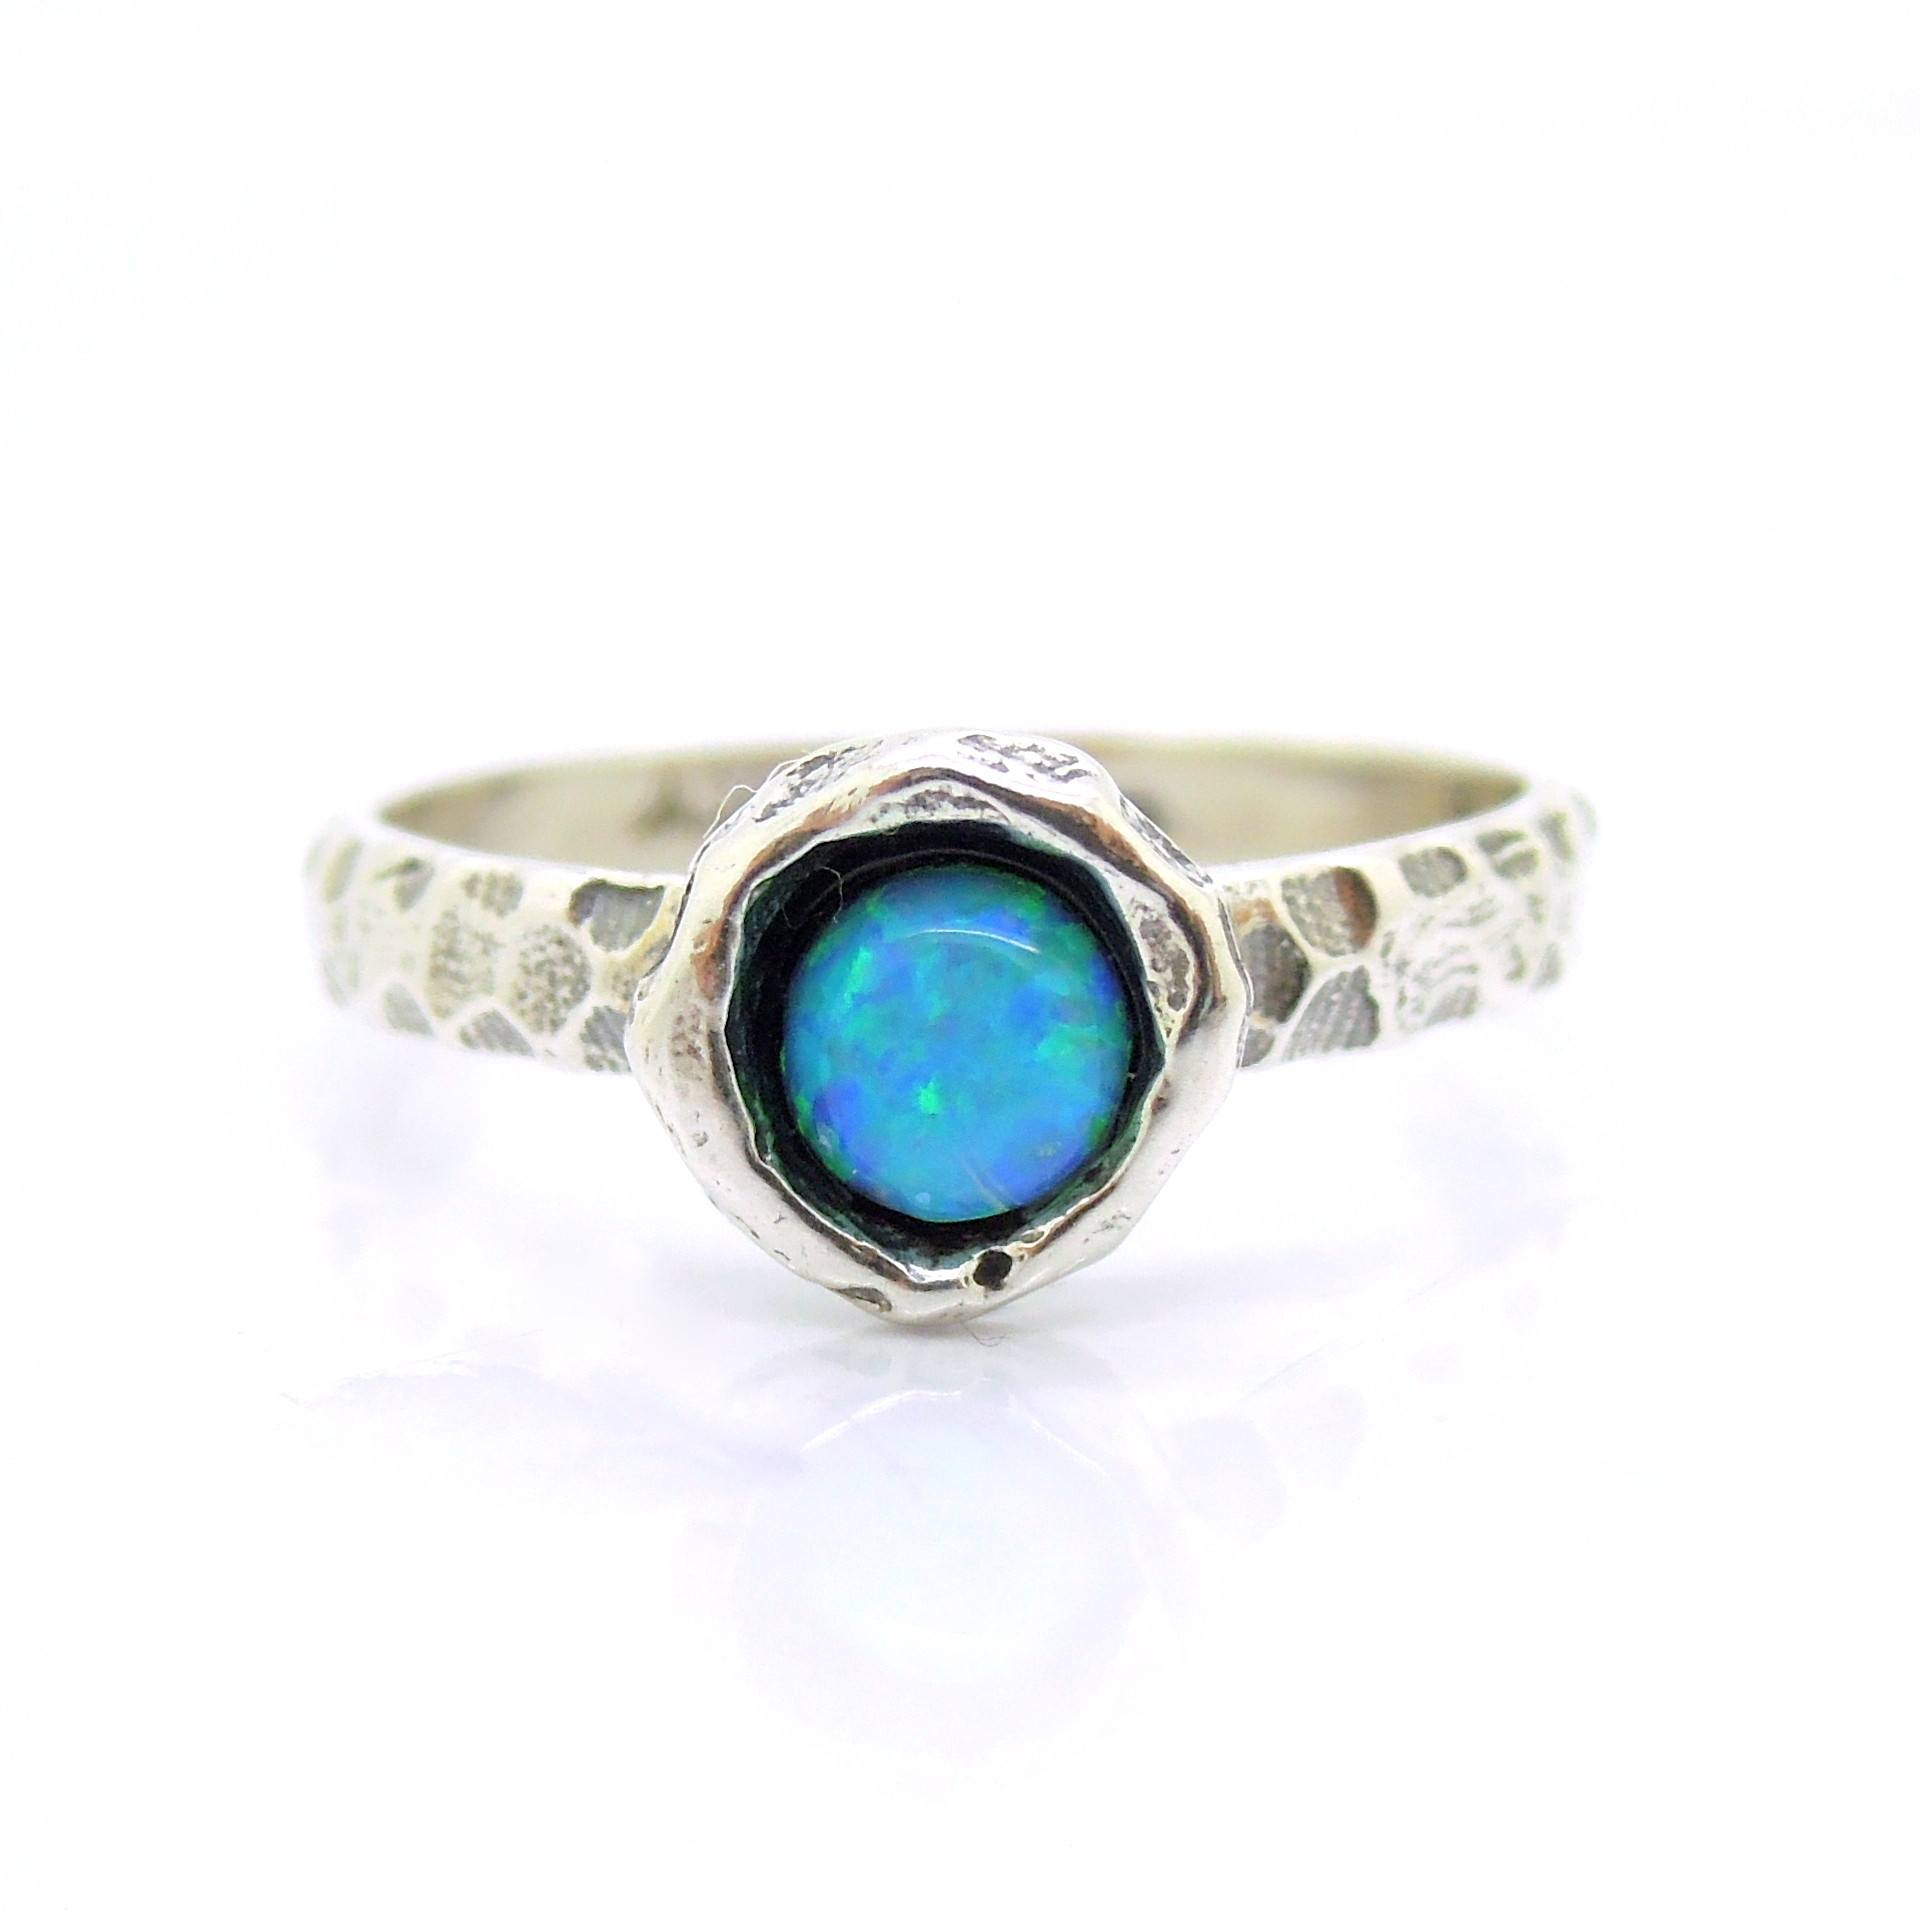 8e0ef83e51c3a Blue Opal ring set in hammered sterling silver, stacking ring